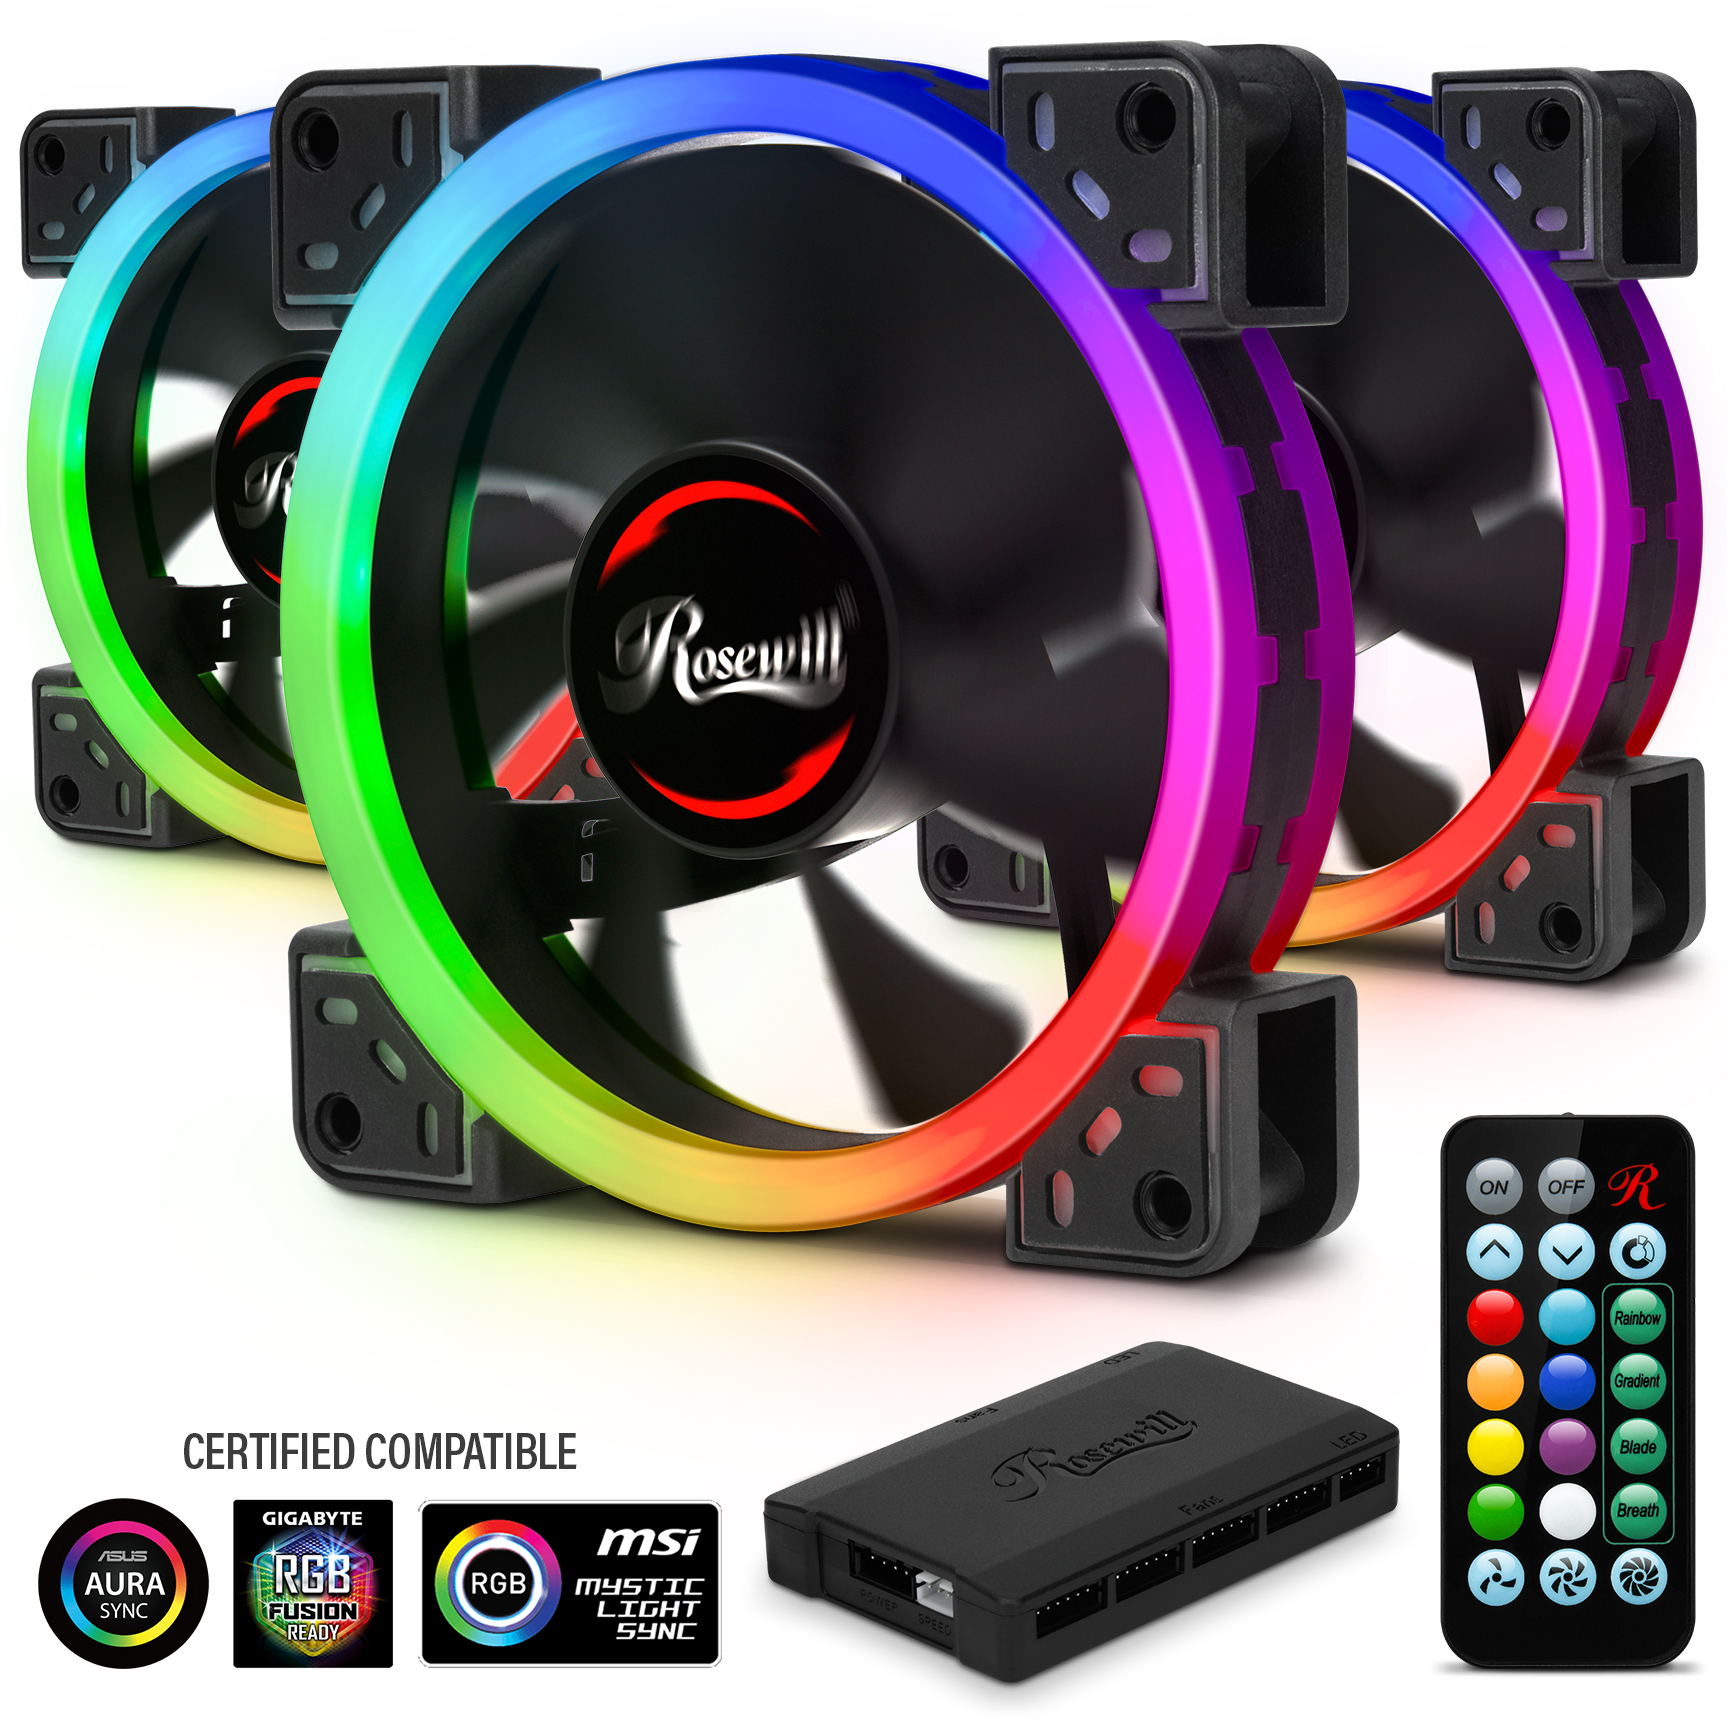 RGBF-S12001 Dual Ring Addressable RGB Set - Rosewill